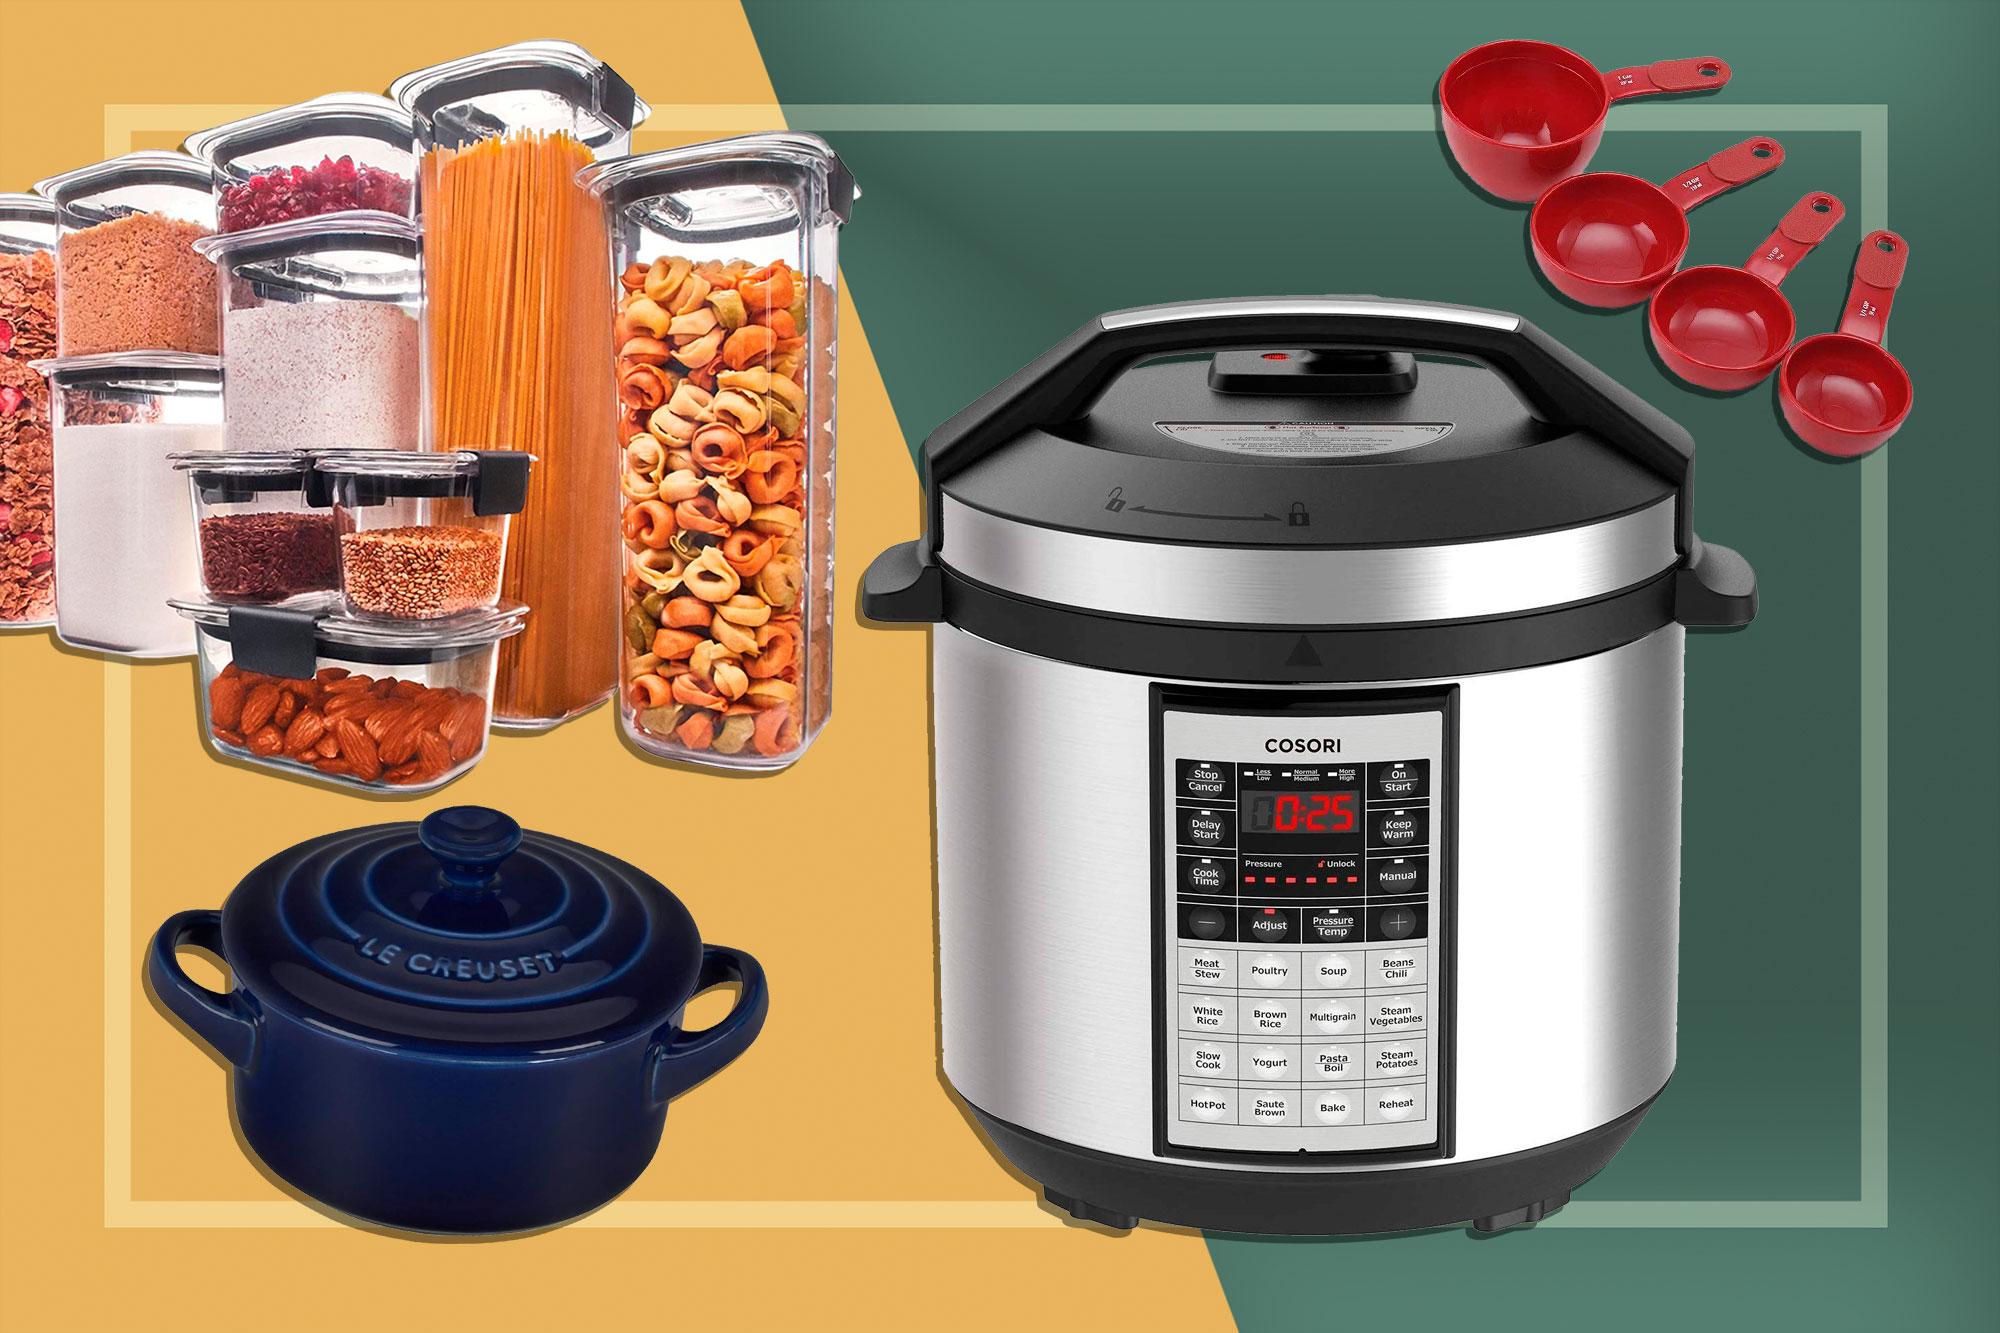 Amazon Home Sale Items: Le Creuset, Pressure Cooker, Measuring Spoons, Storage Containers